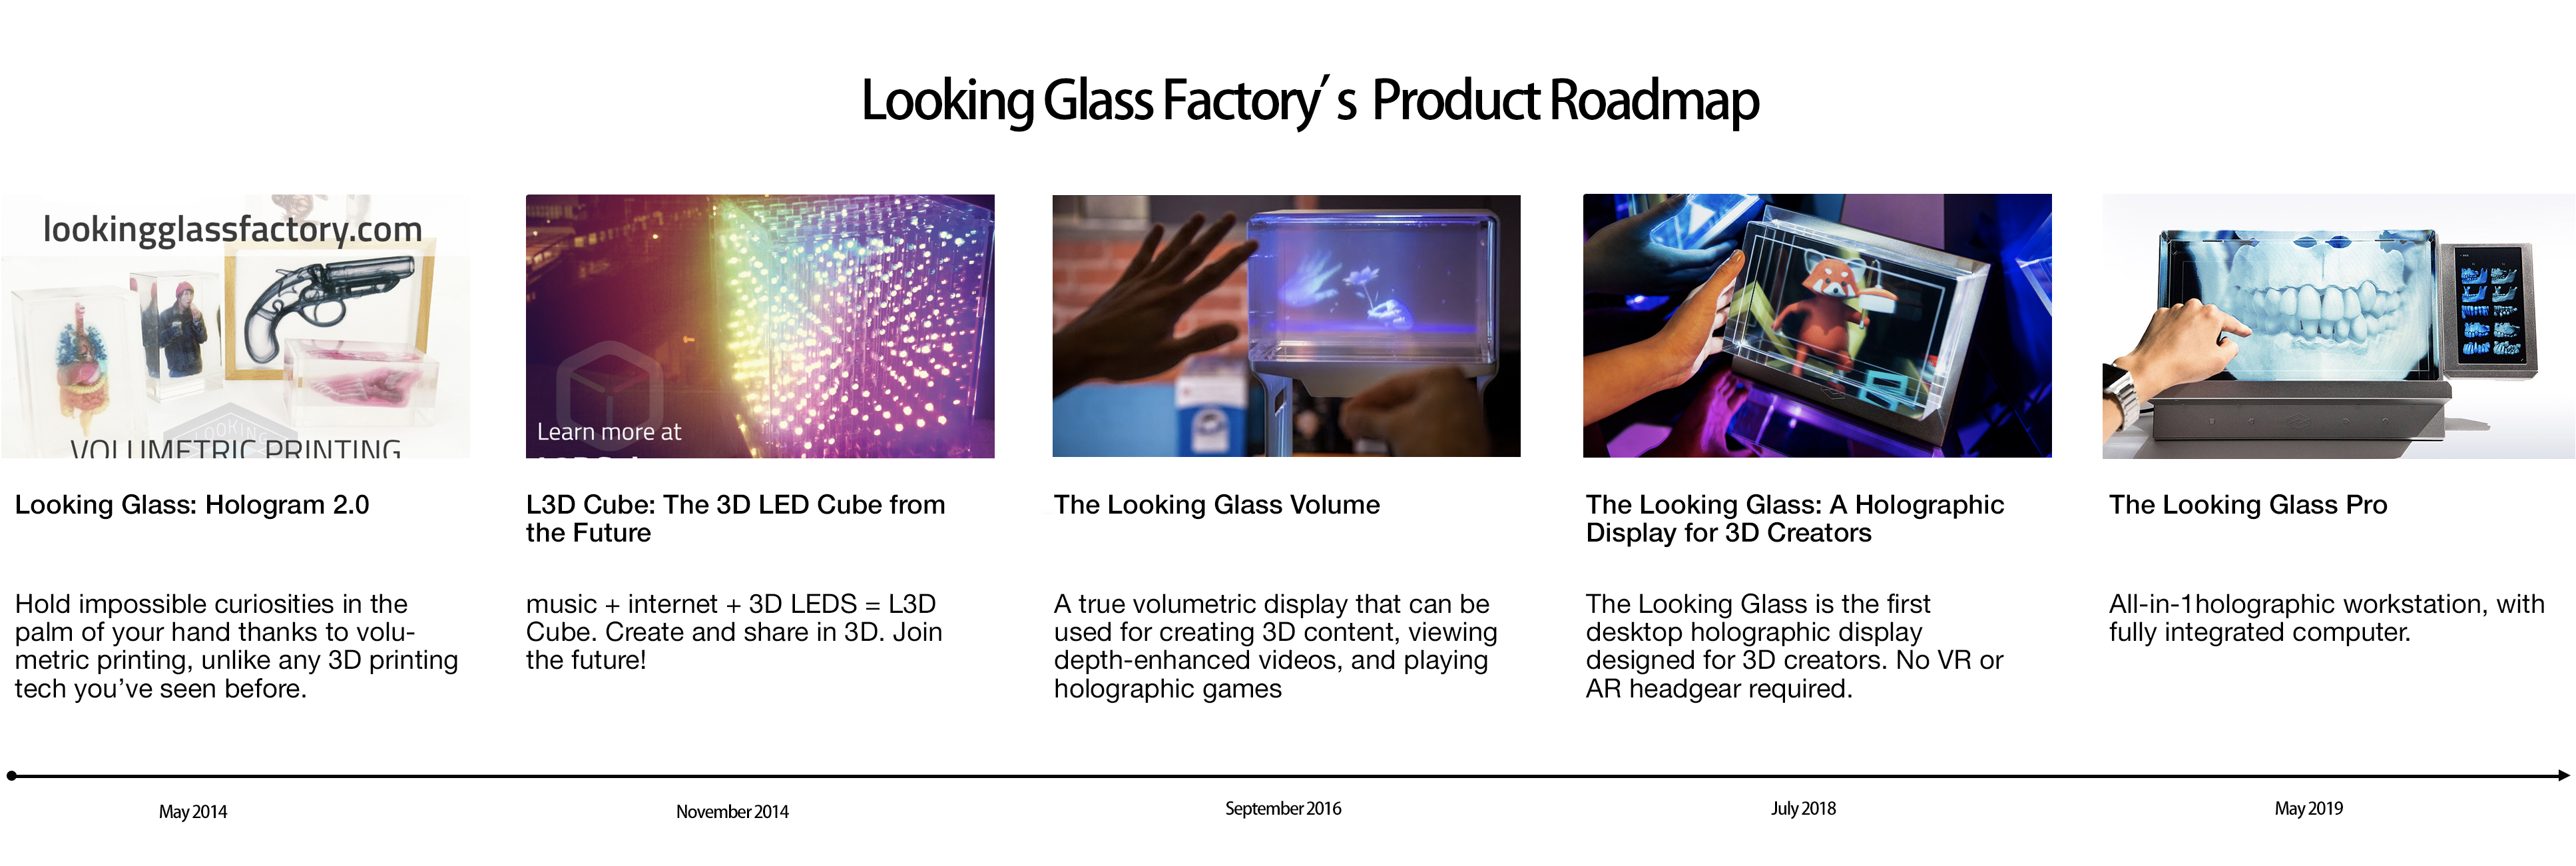 Looking glass product roadmap